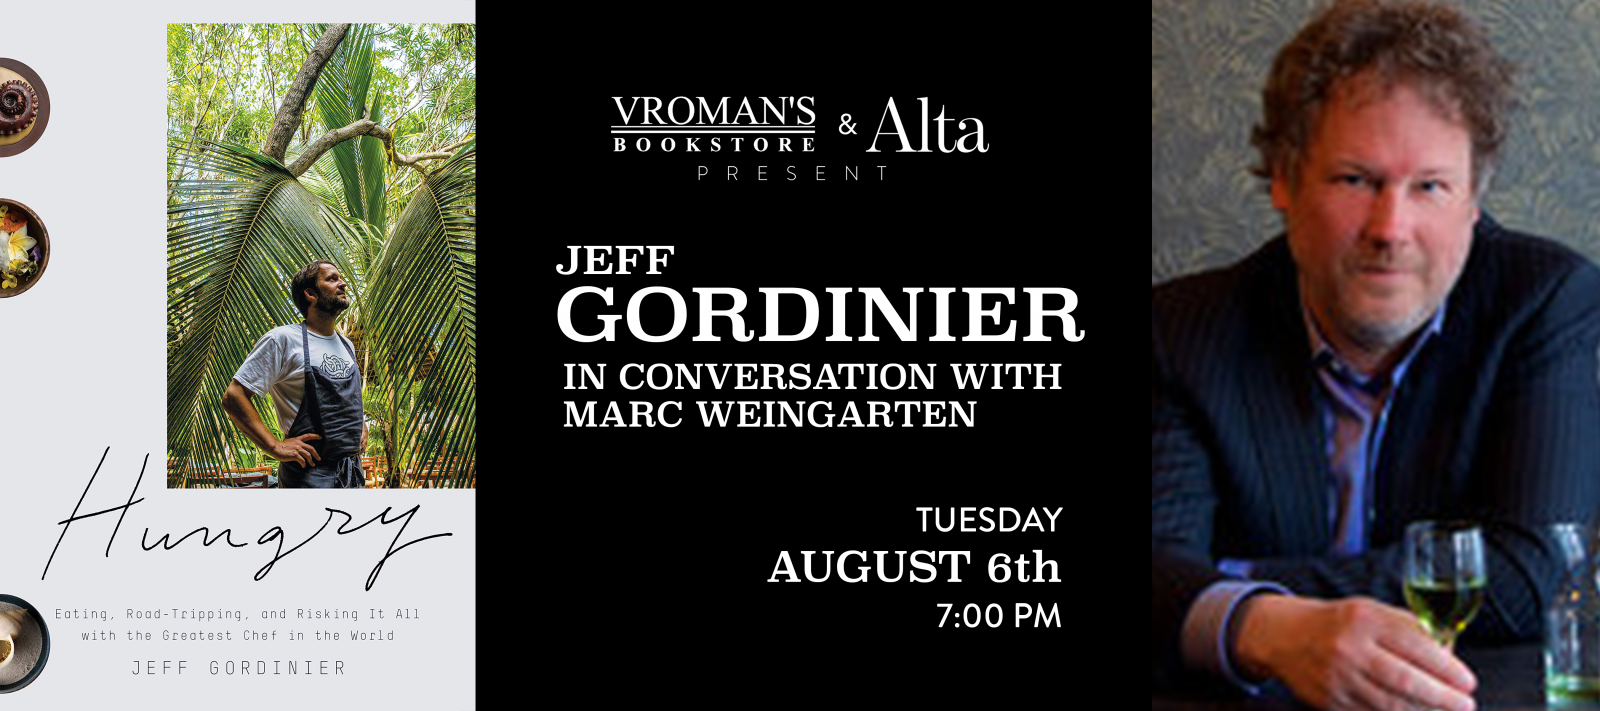 Jeff Gordinier book signing Tuesday August 6th at 7pm